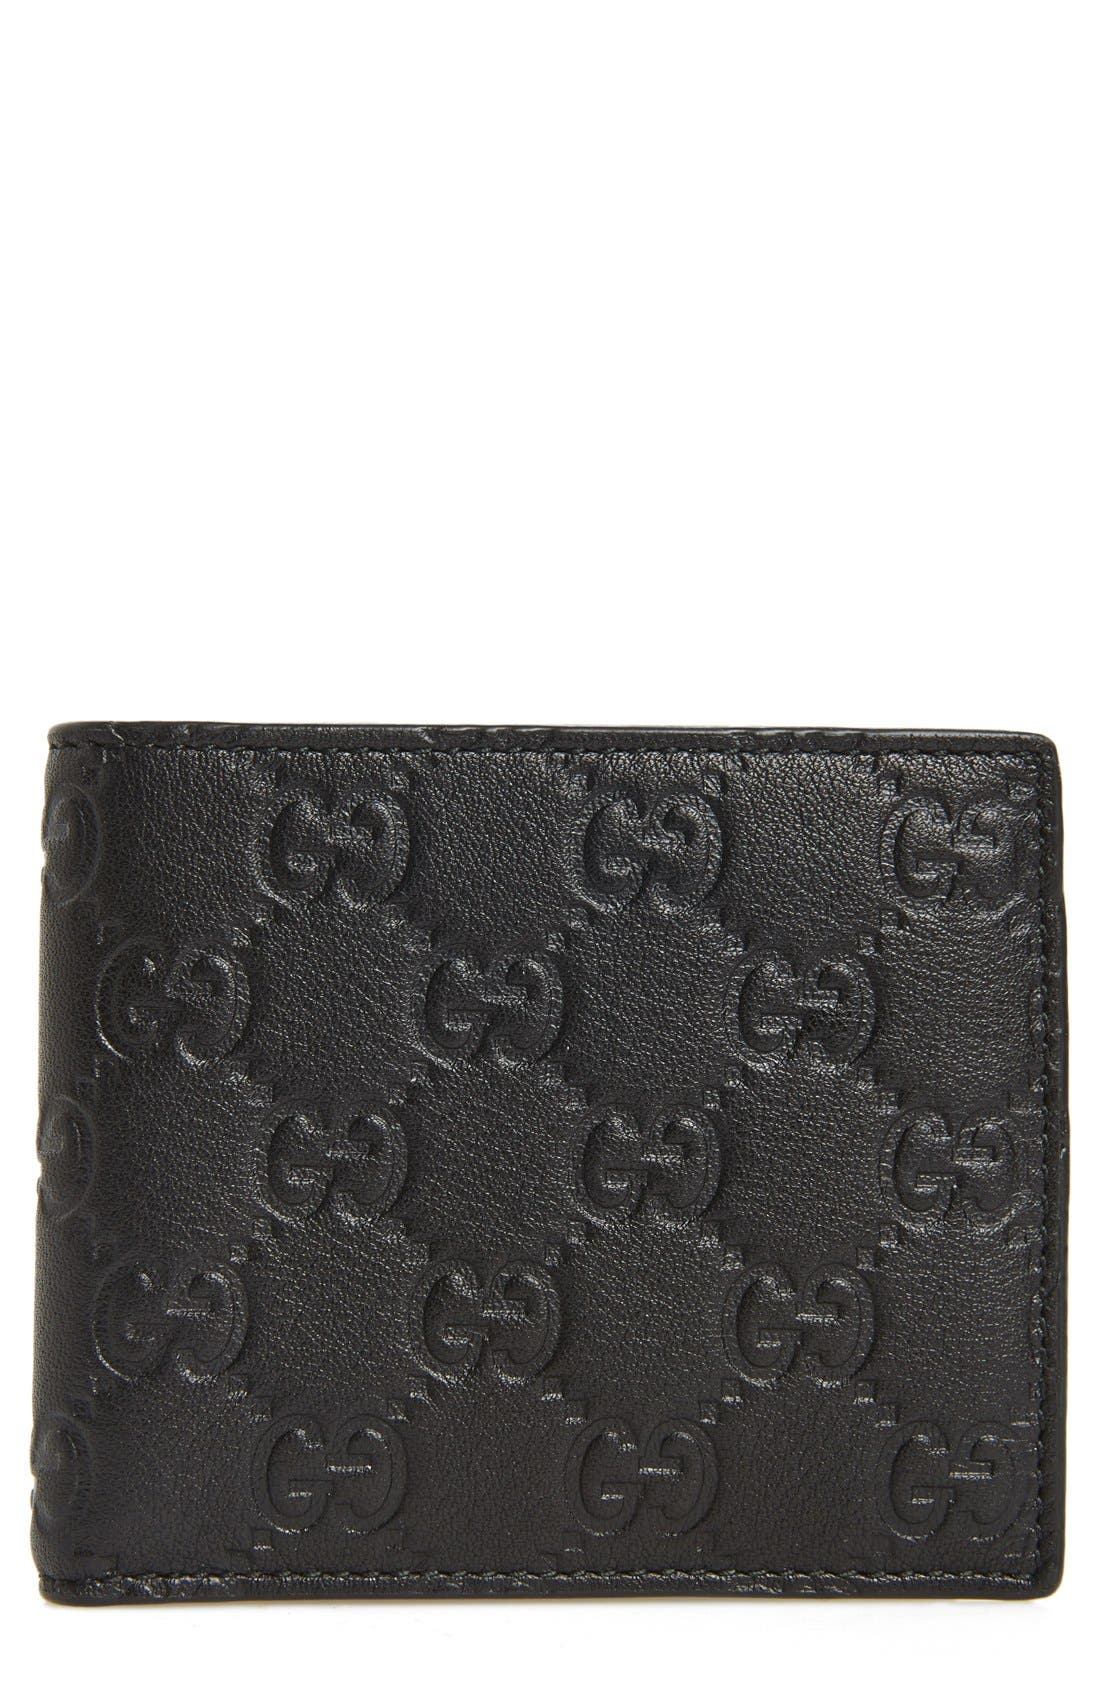 Logo Embossed Calfskin Leather Wallet,                             Main thumbnail 1, color,                             Black